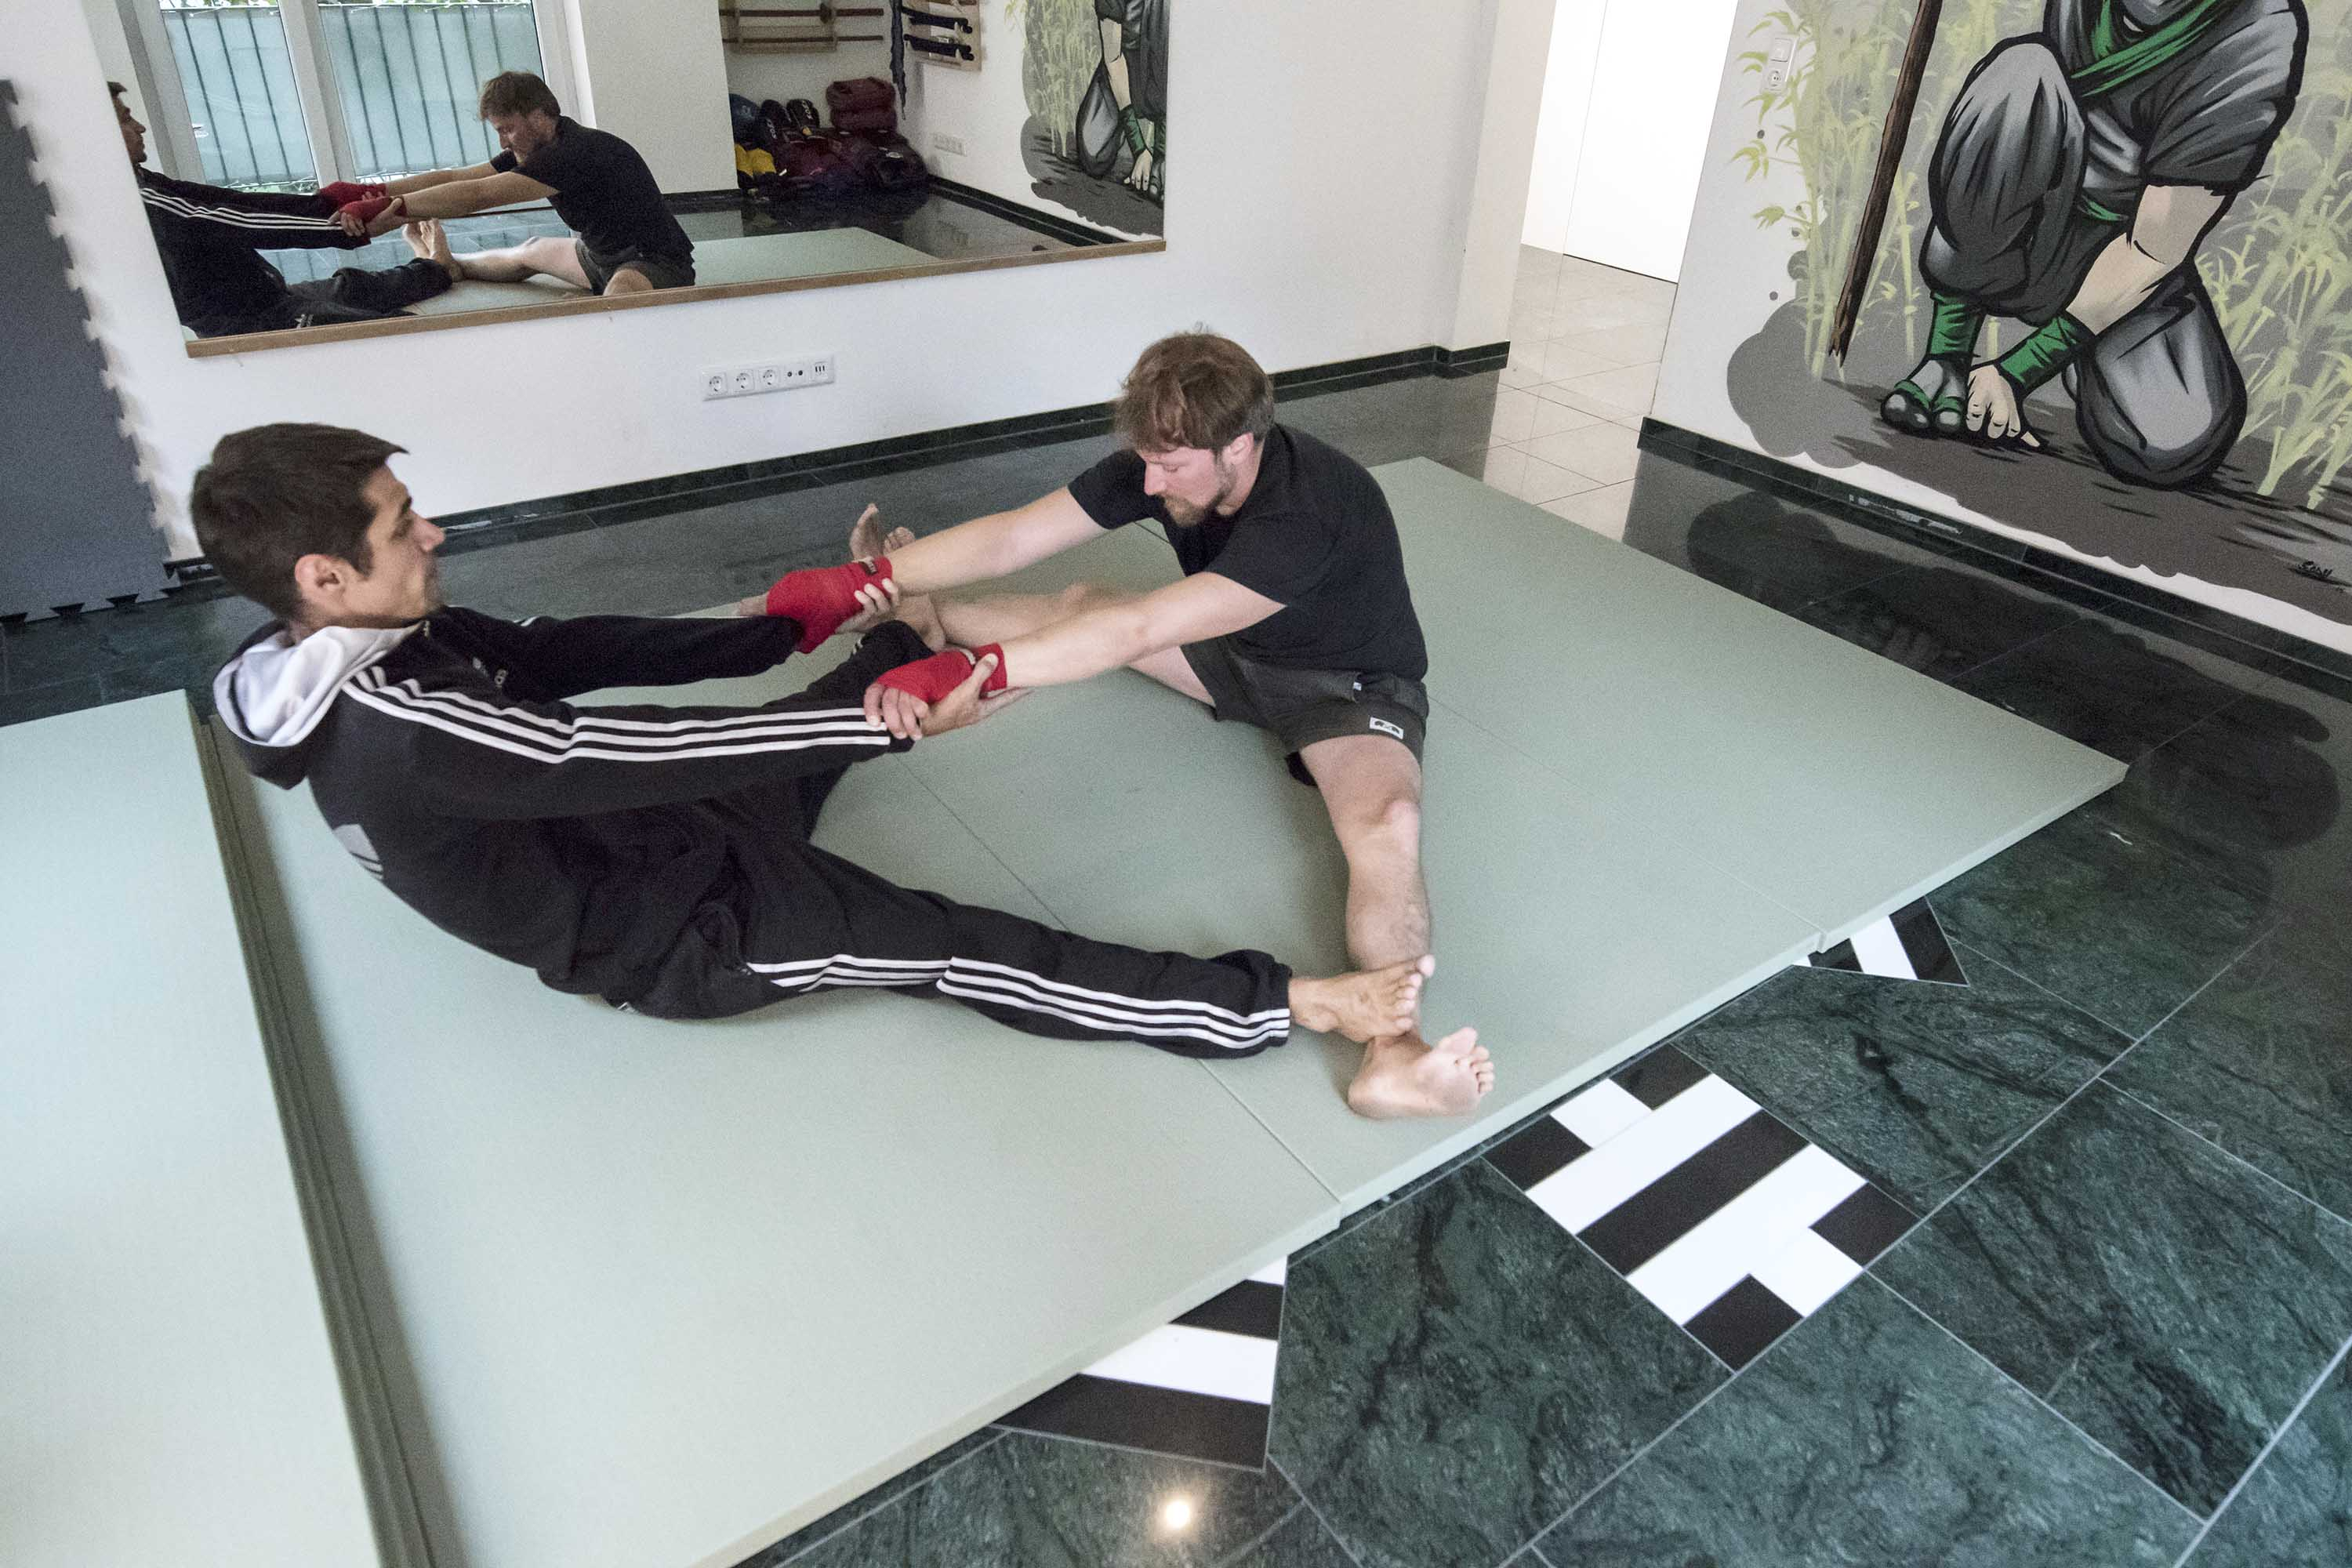 RONIN_DOJO_Traditionelles_thaiboxen_Training_Stretch